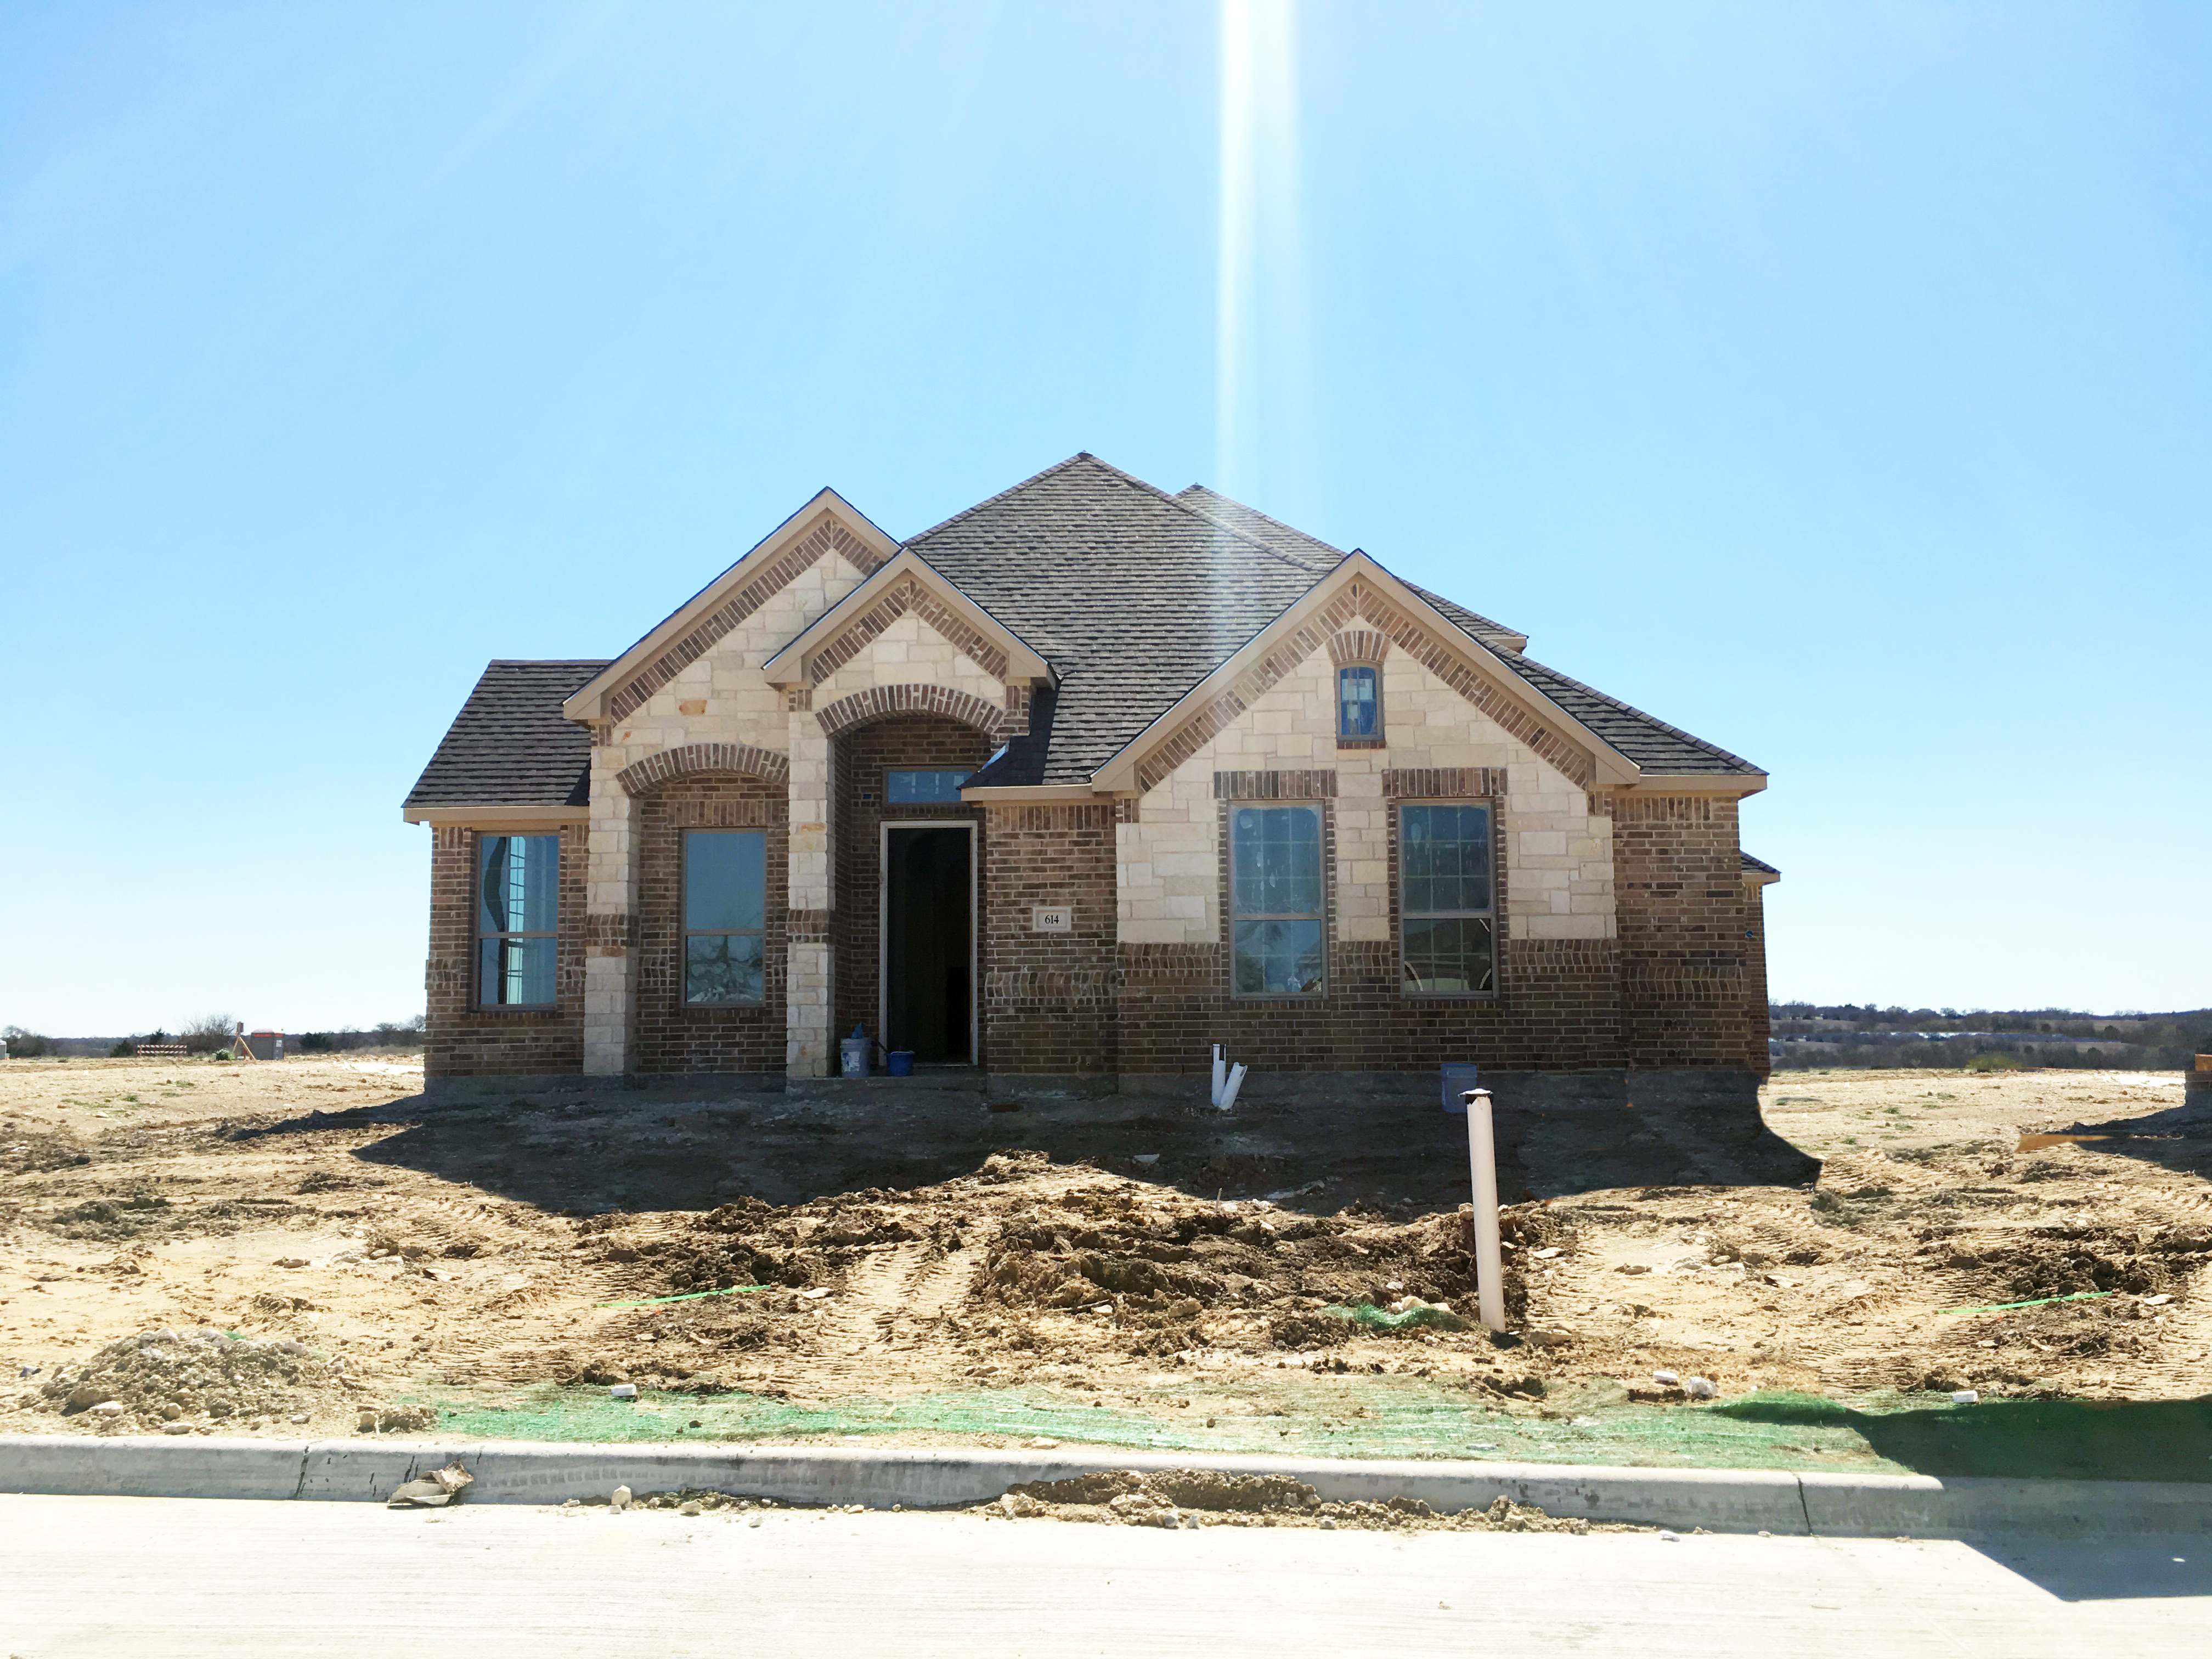 new homes for sale dove creek mcalpin rd community